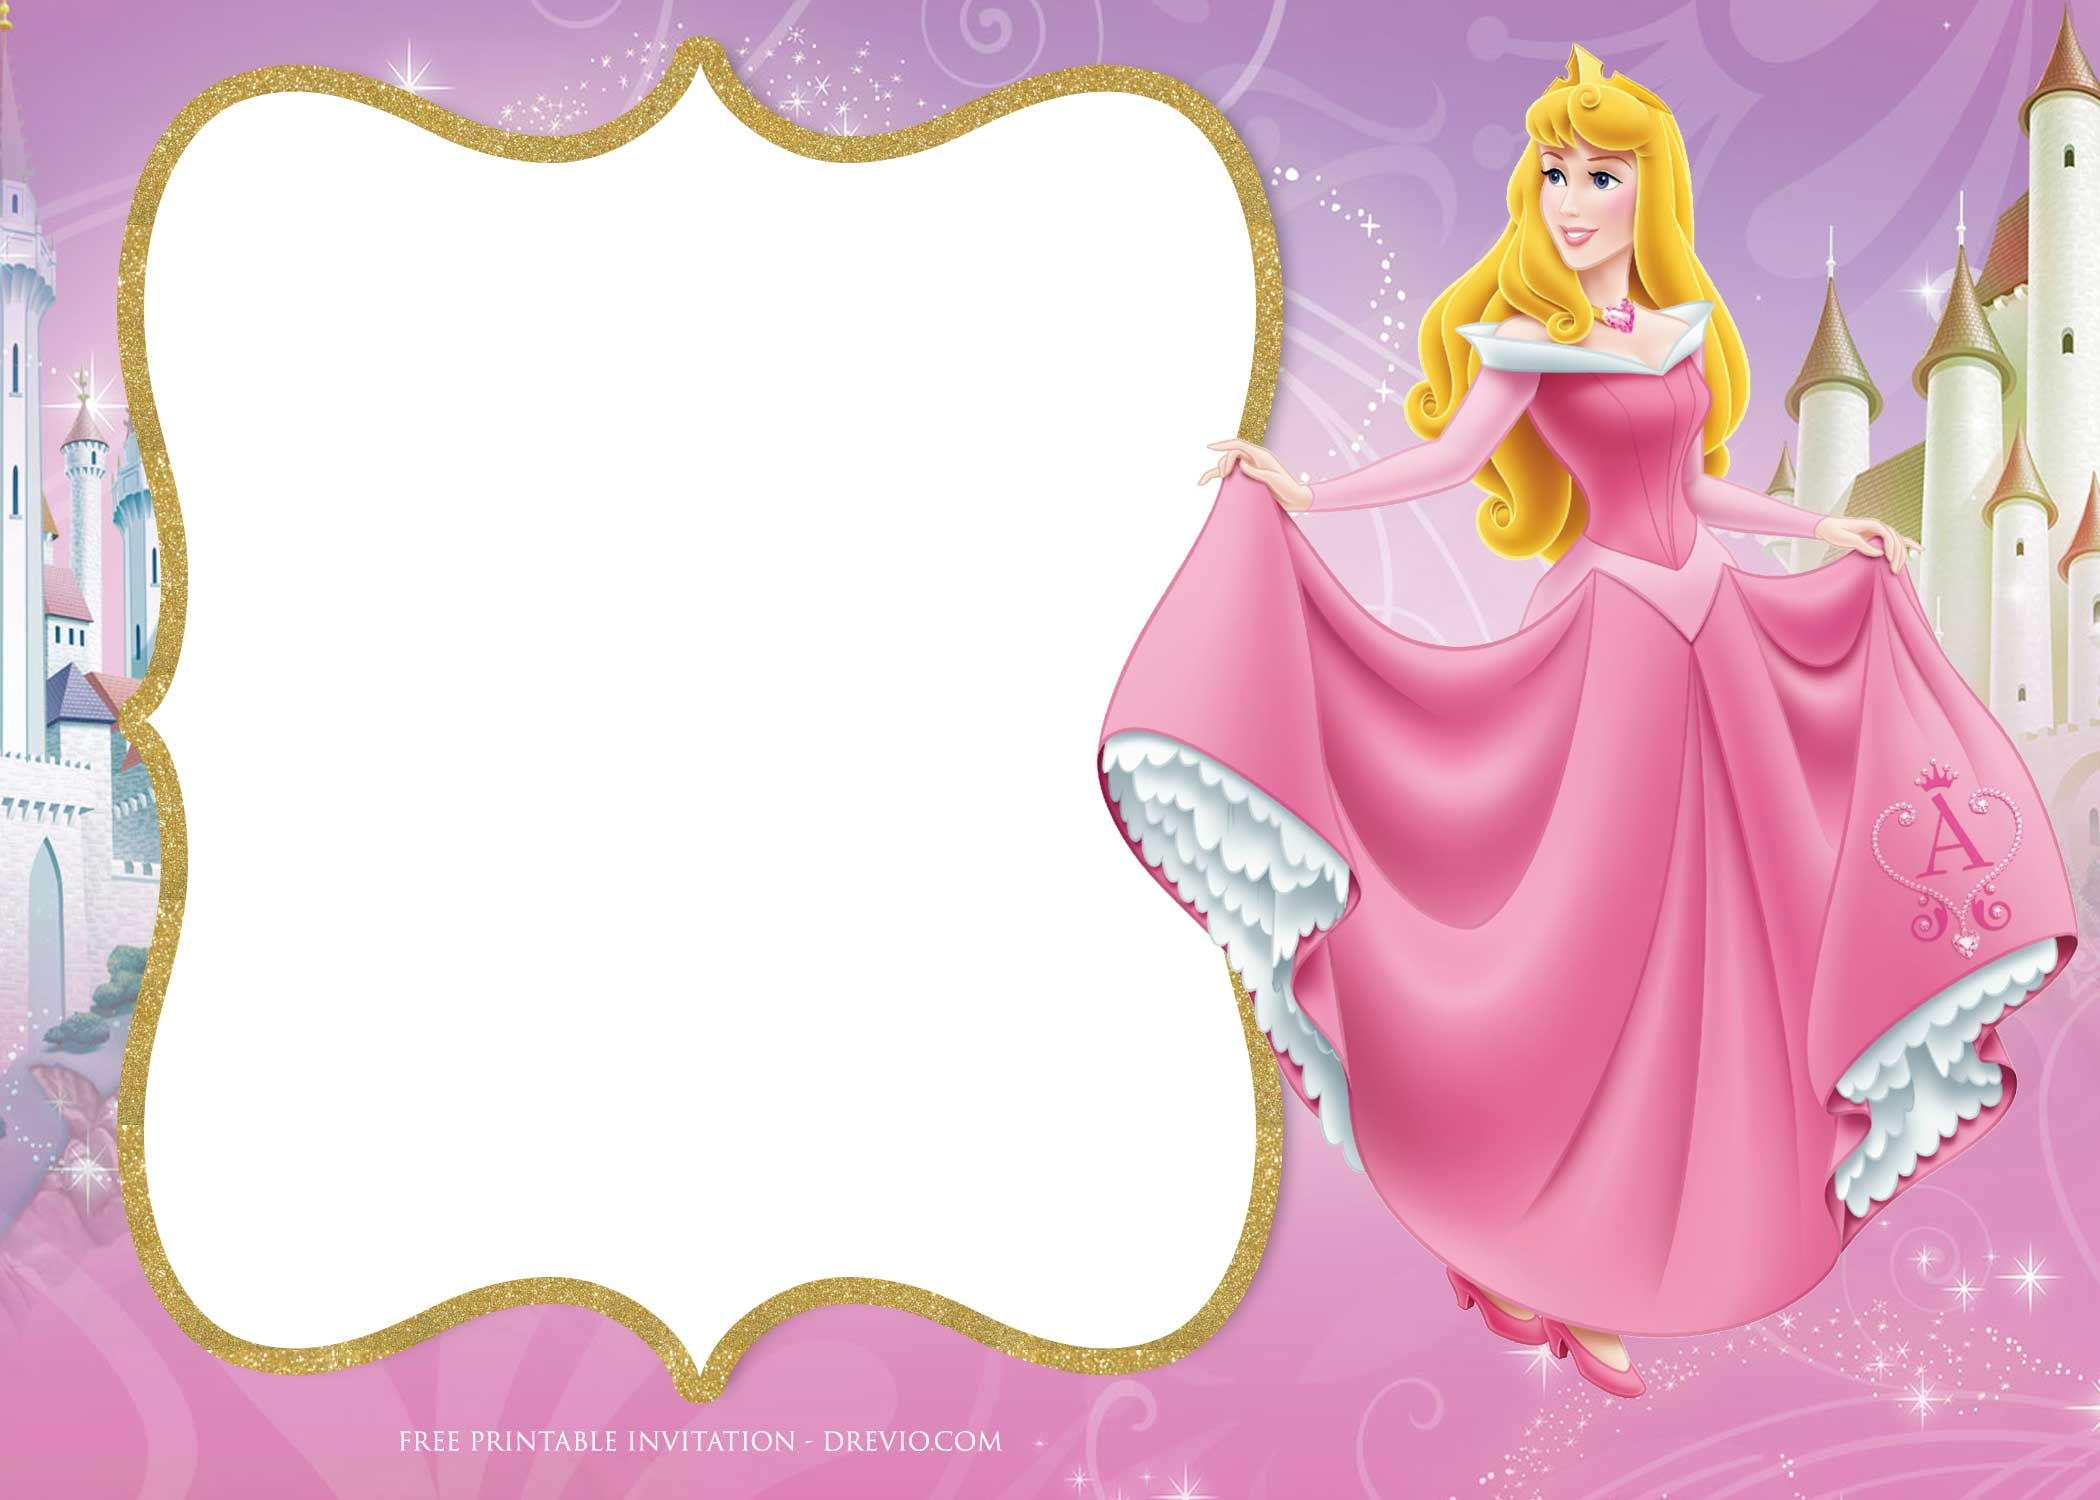 Download Now FREE Printable Princess Aurora Sleeping Beauty Invitation Templates